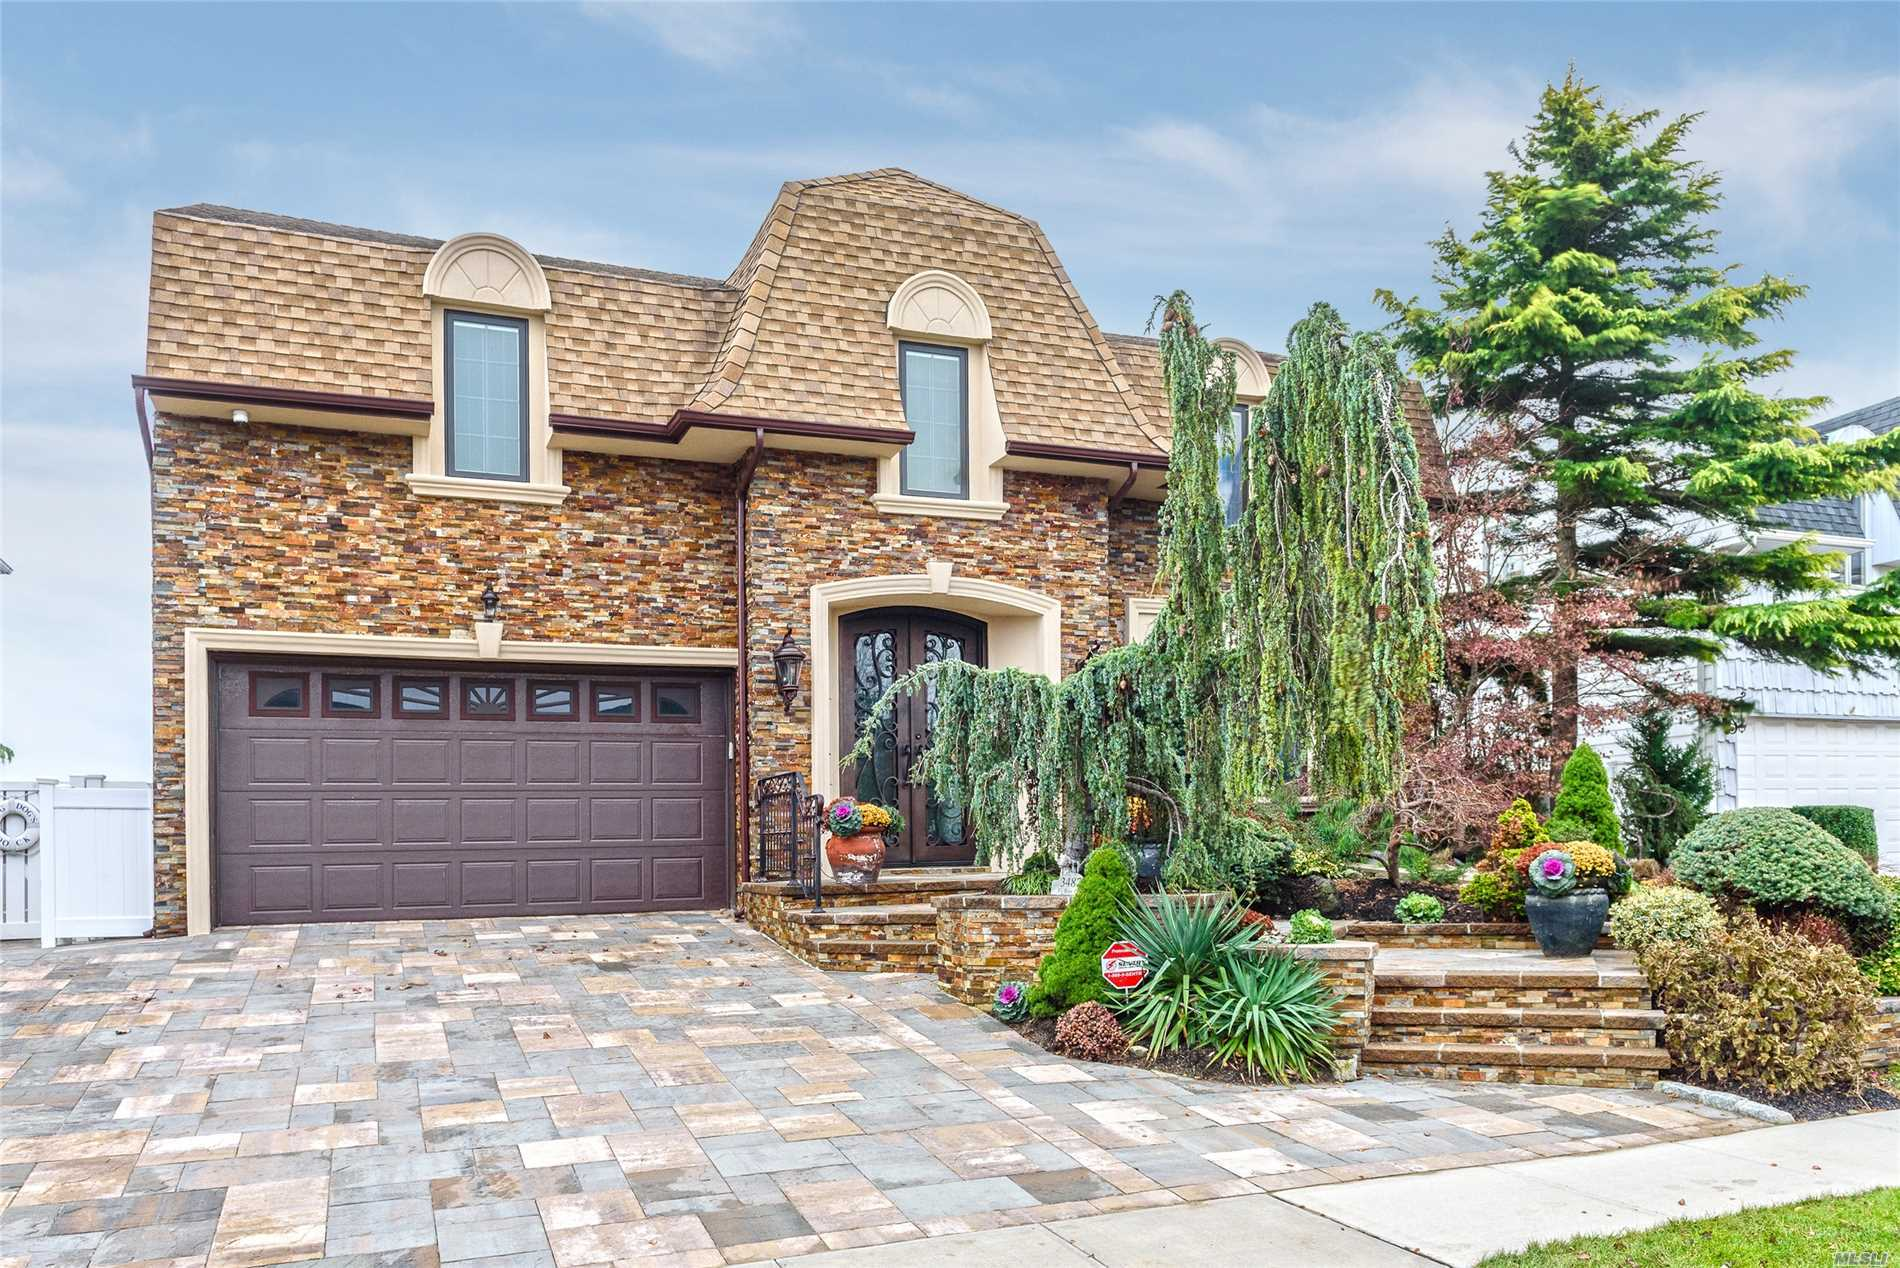 Panoramic Open Bay 5Br Colonial--Cul-De-Sac St.--New Vinyl Bulkhead, Pier, & Floating Dock! N E W: Plumbing/Vinyl Ig Pool, Pavers, Ductwork For Central Air, Sweeping Bannister, 1st Level New Tiled Floor & New Central Vac! All Updated Bths, & Stately New Front Entry Door! Granite Eik W/Kitchen Nook! Replaced Thermostats, Many Brand New Pella Windows, Gas Marble/Travertine Fireplace, New Attic Fan, Led Lites, New Trex Deck, Exterior Lites & Skylite/Motorized Shade! Unobstructed Views Of Bay!